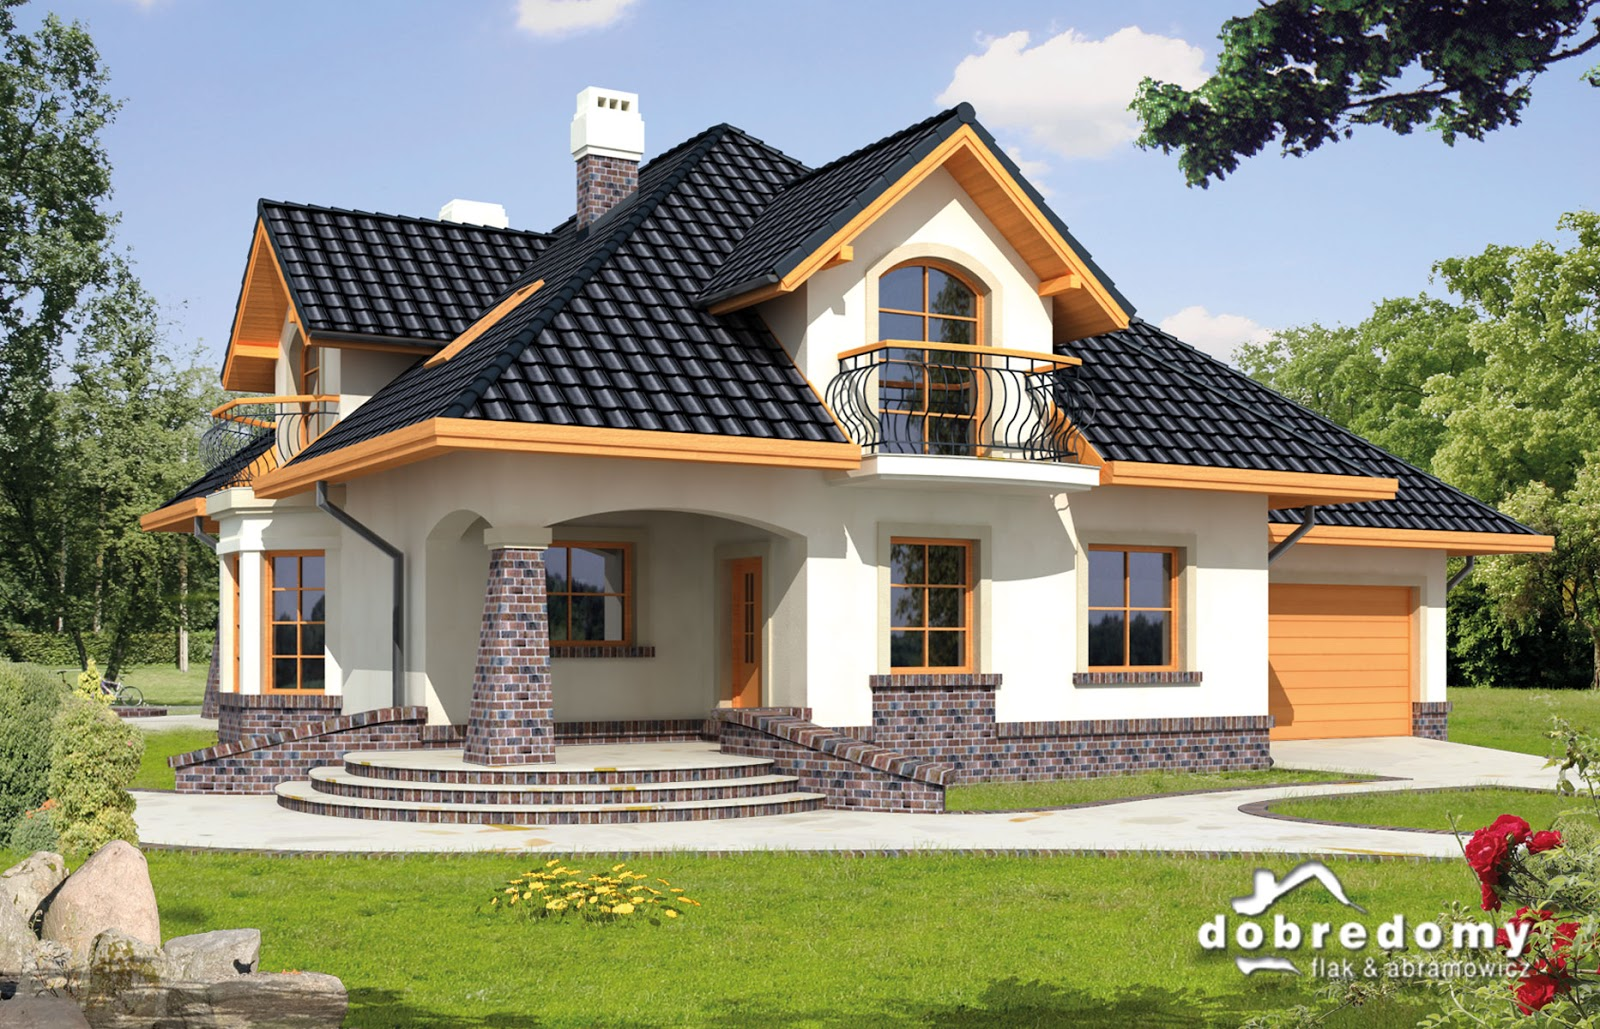 House design bungalow type - The Following European House Design Can Be Imitated Without The Chimney Ideal For Bungalow Type Of House In The Philippines